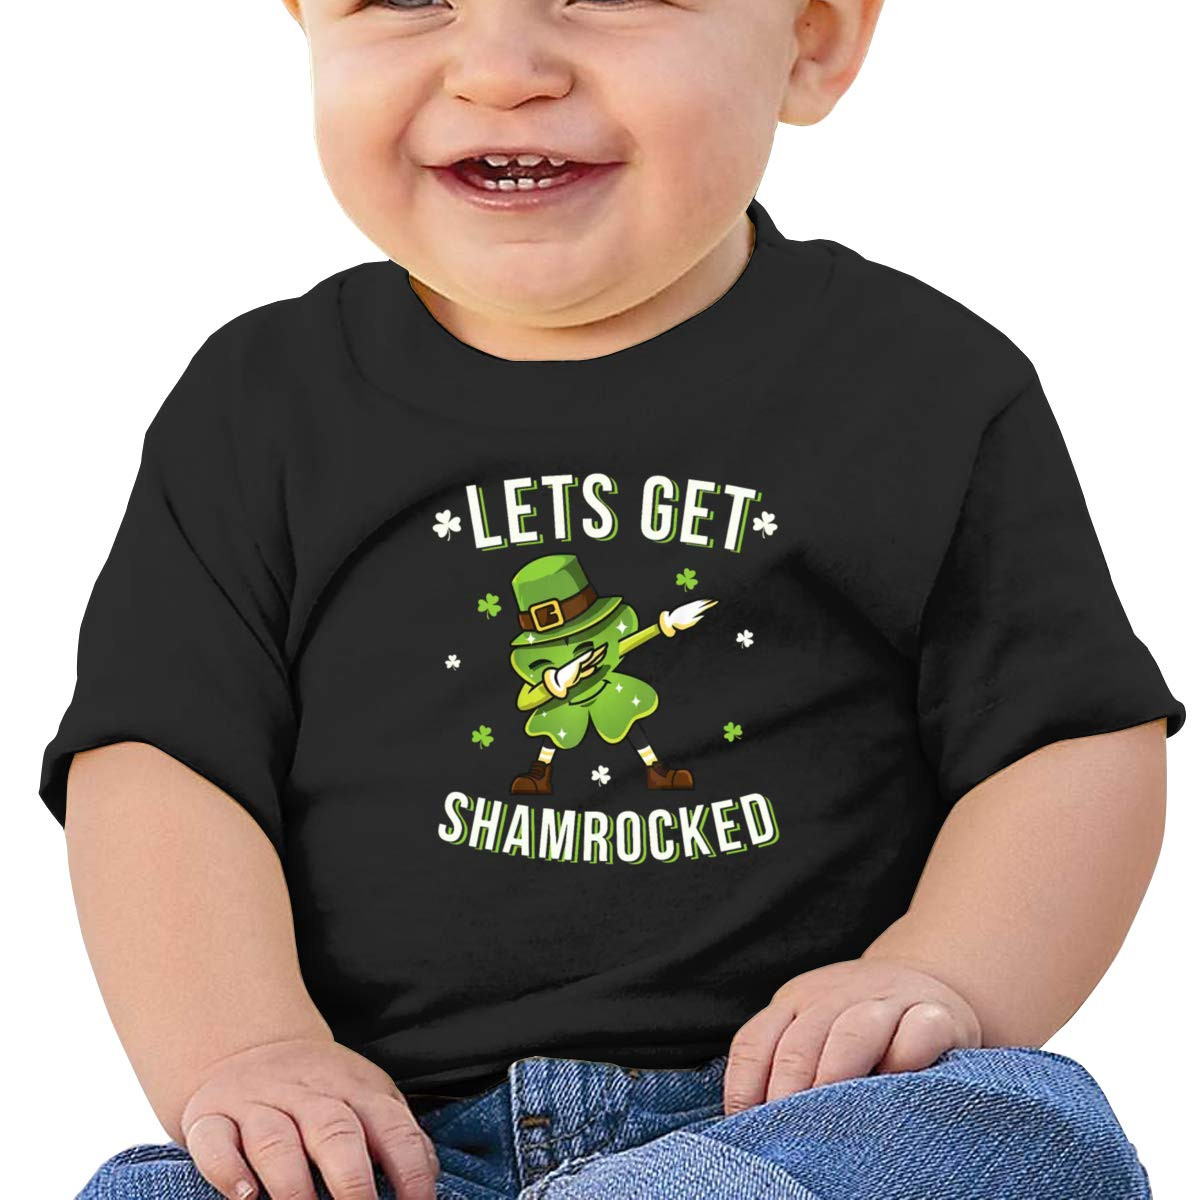 Qiop Nee Lets GET Shamrocked/  Short Sleeve T-Shirt Baby Boy